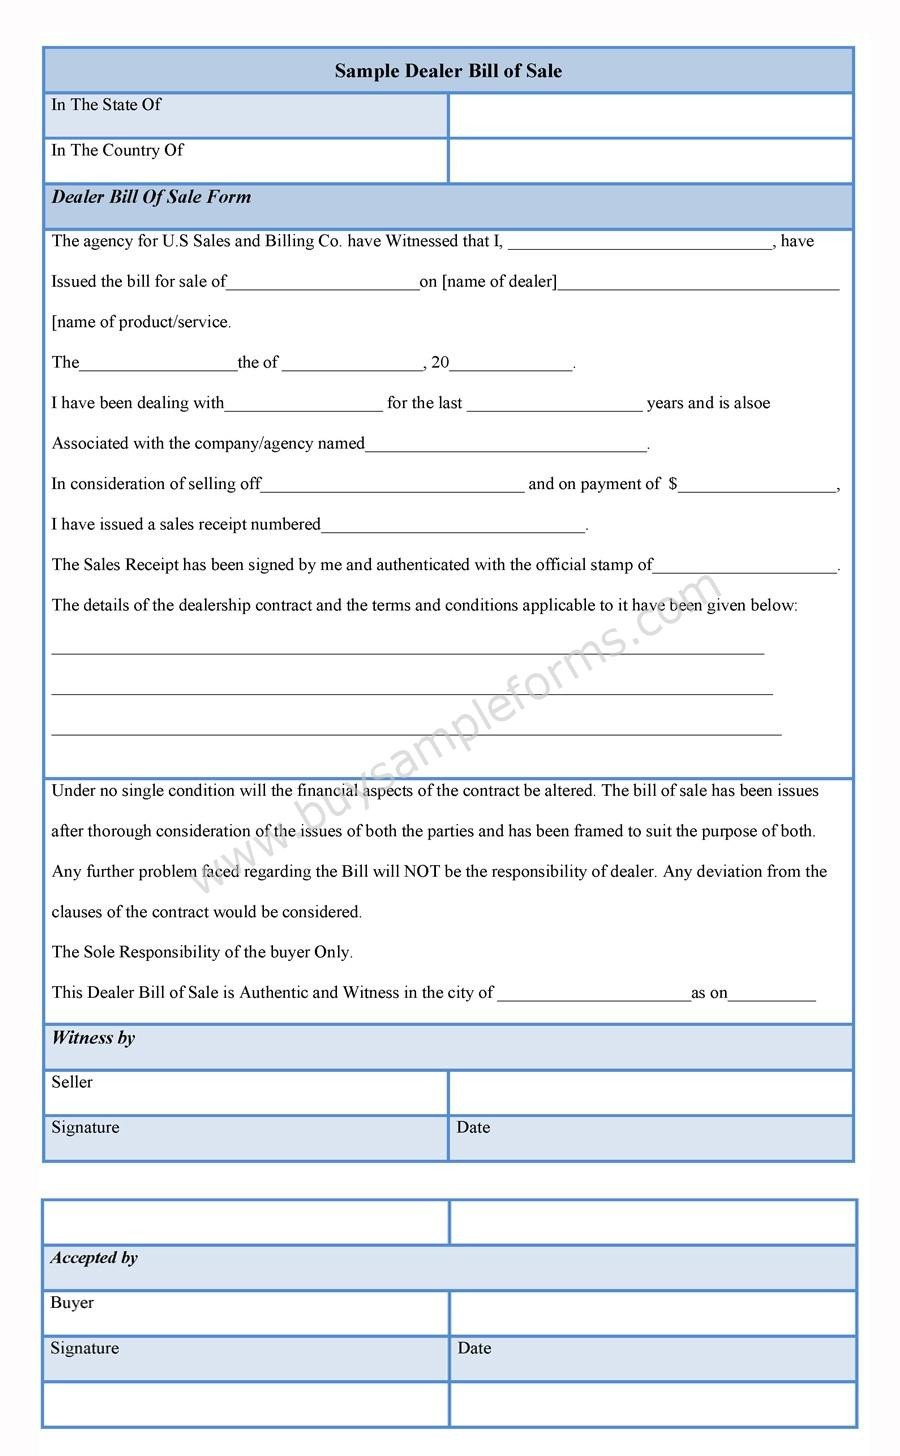 Dealer Bill Of Sale Dealer Bill Of Sale form